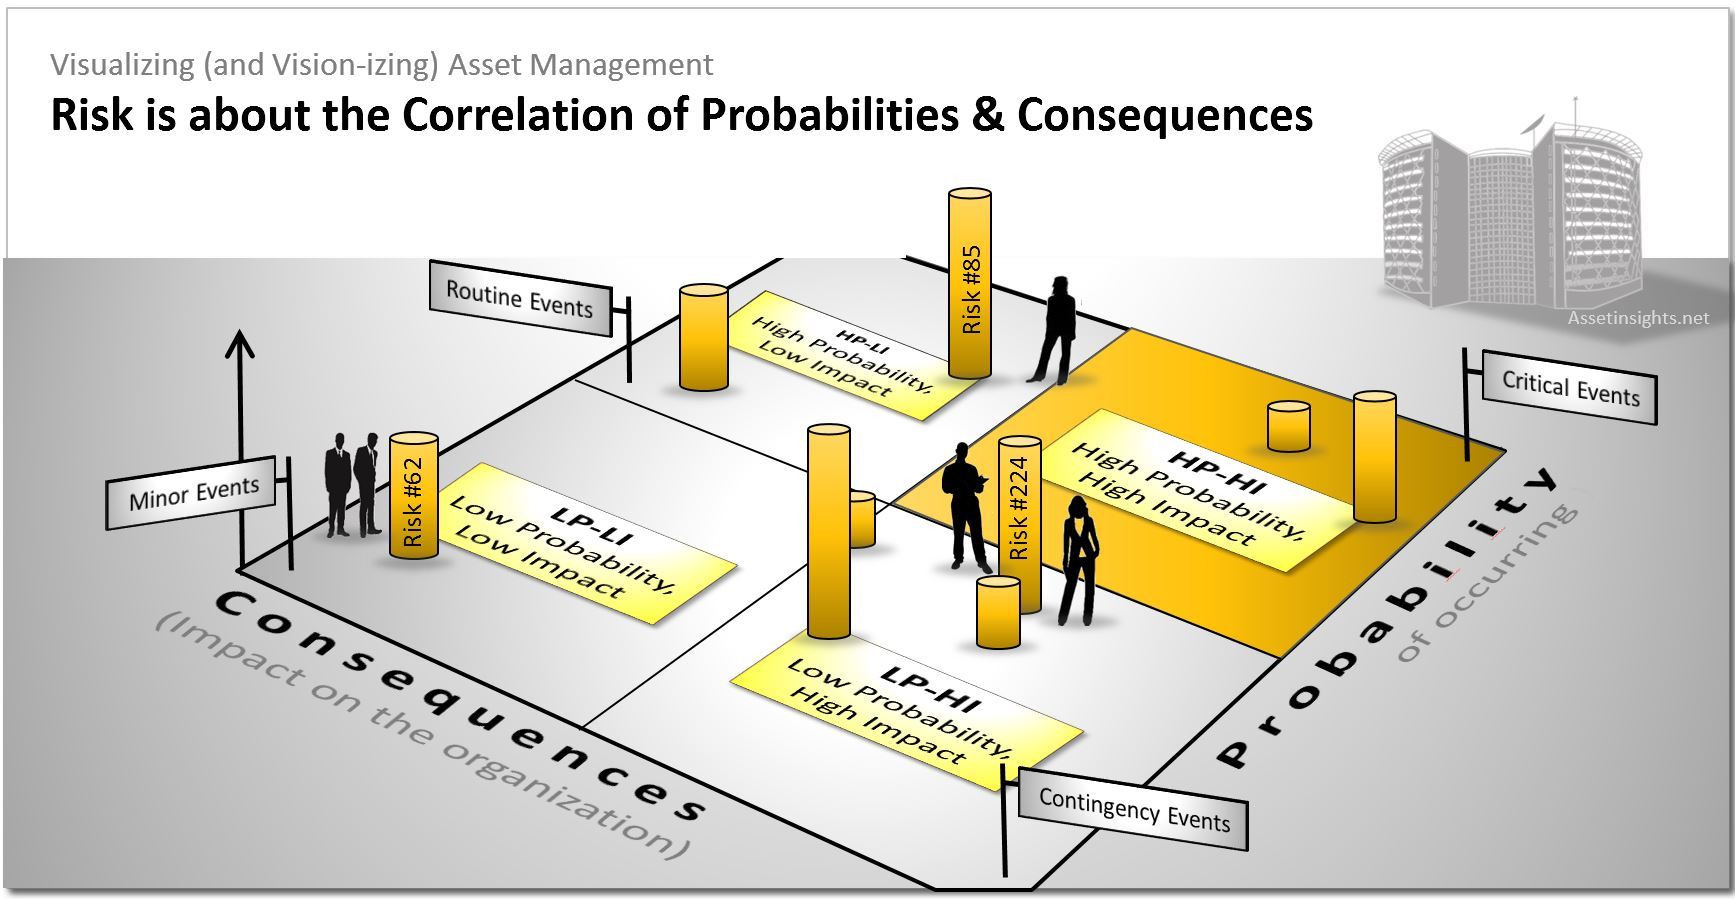 Risk-based decision making is at the heart of asset management and this requires mindful consideration of the relationship between the probability of failure (PoF) and the consequences of failure (CoF). The complexities of these correlations can sometimes be captured on a risk matrix.